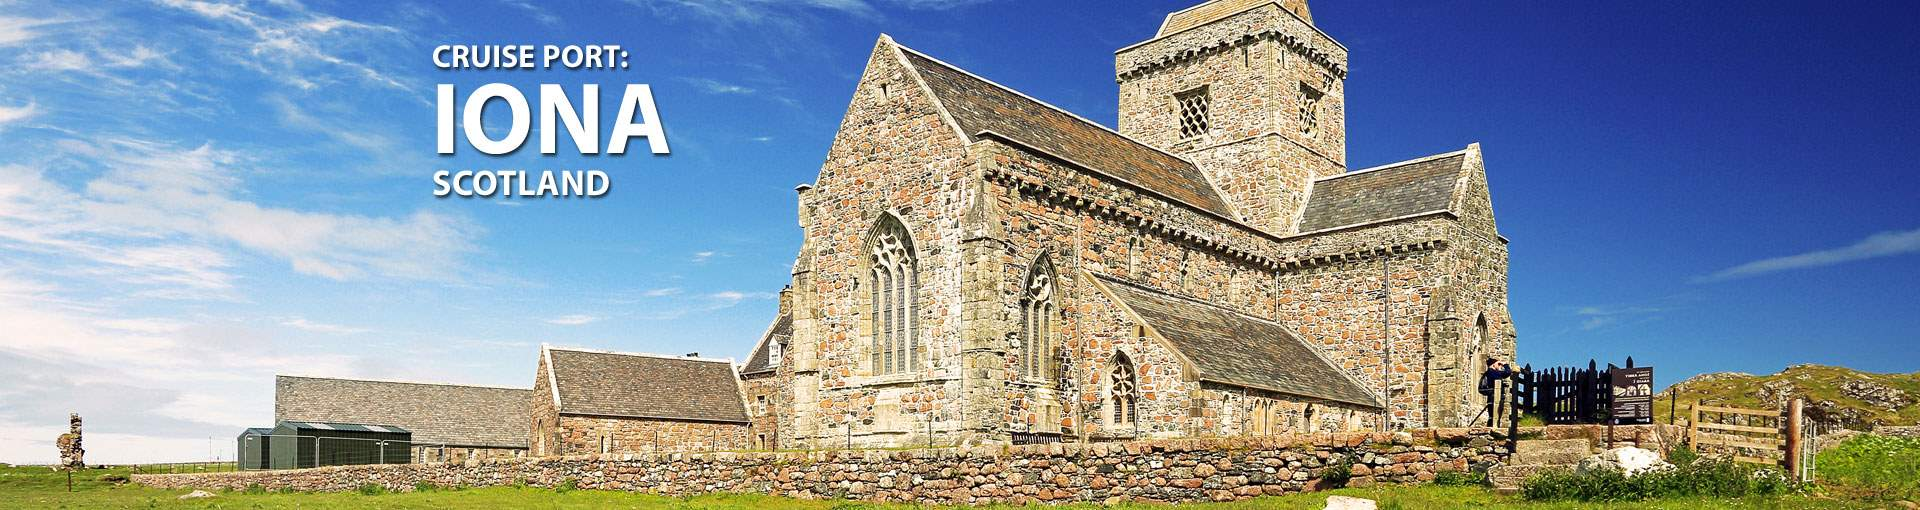 Cruises to Iona, Scotland